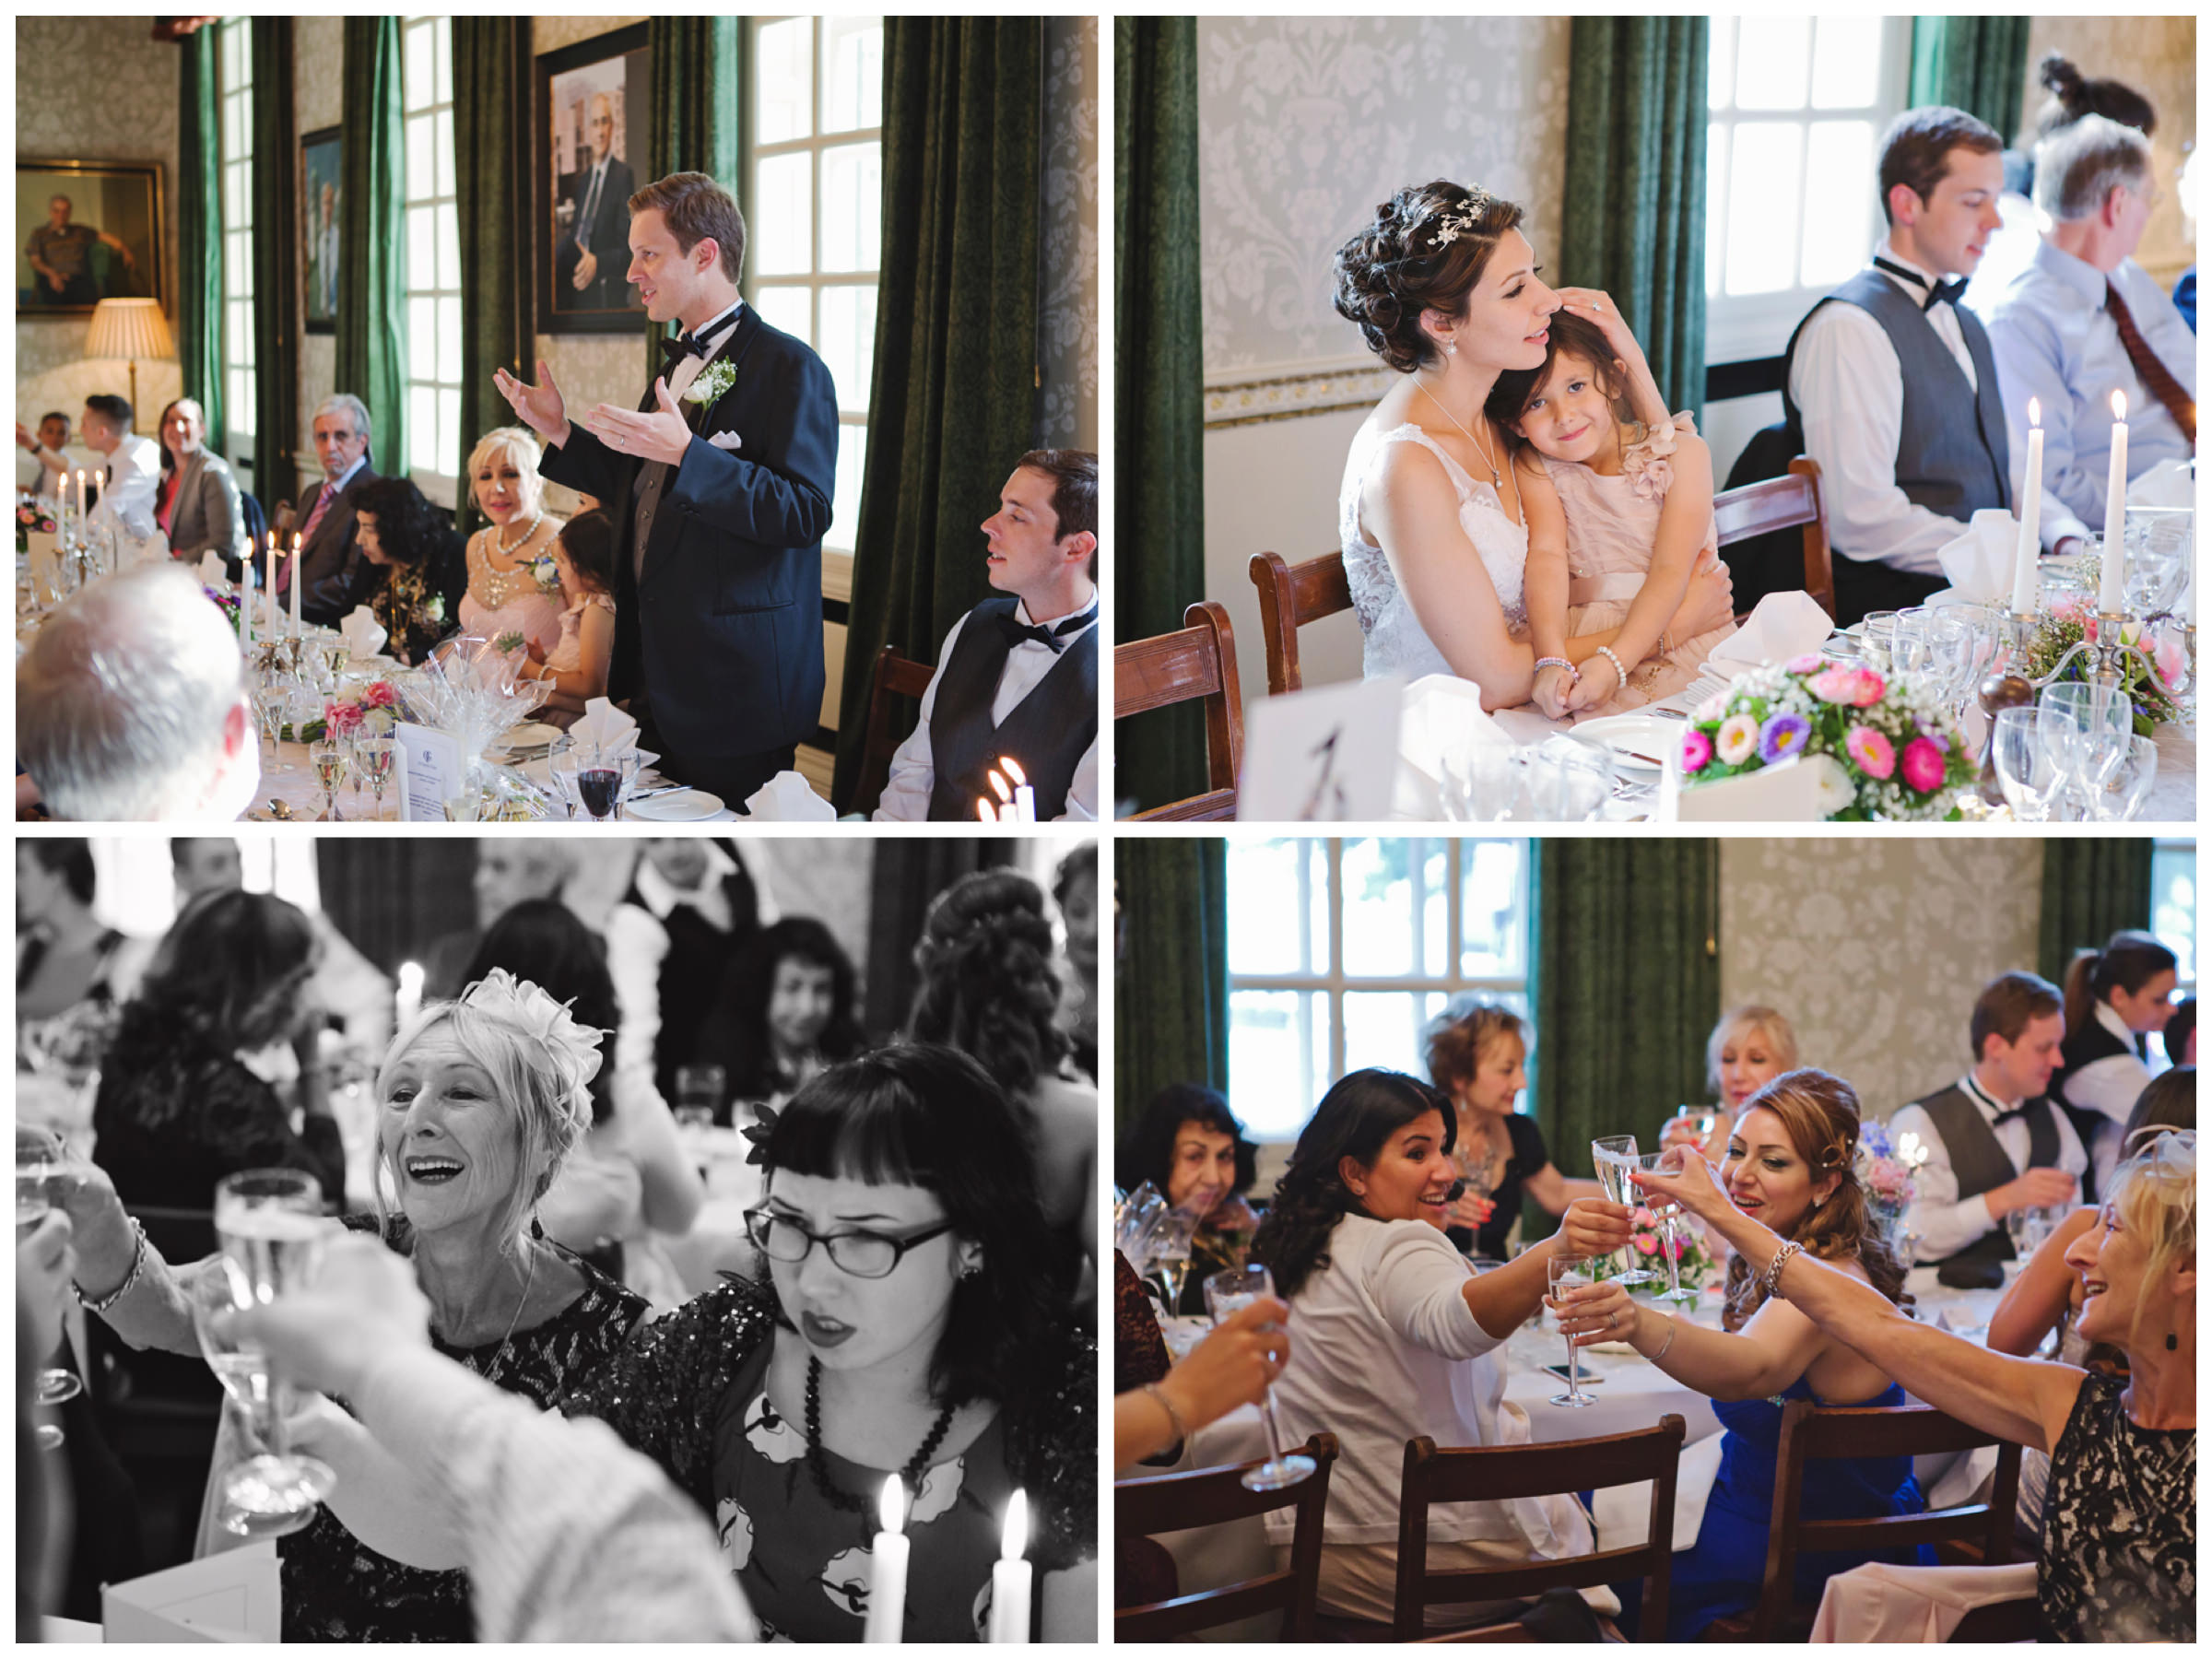 Kensington Wedding Photographer 10